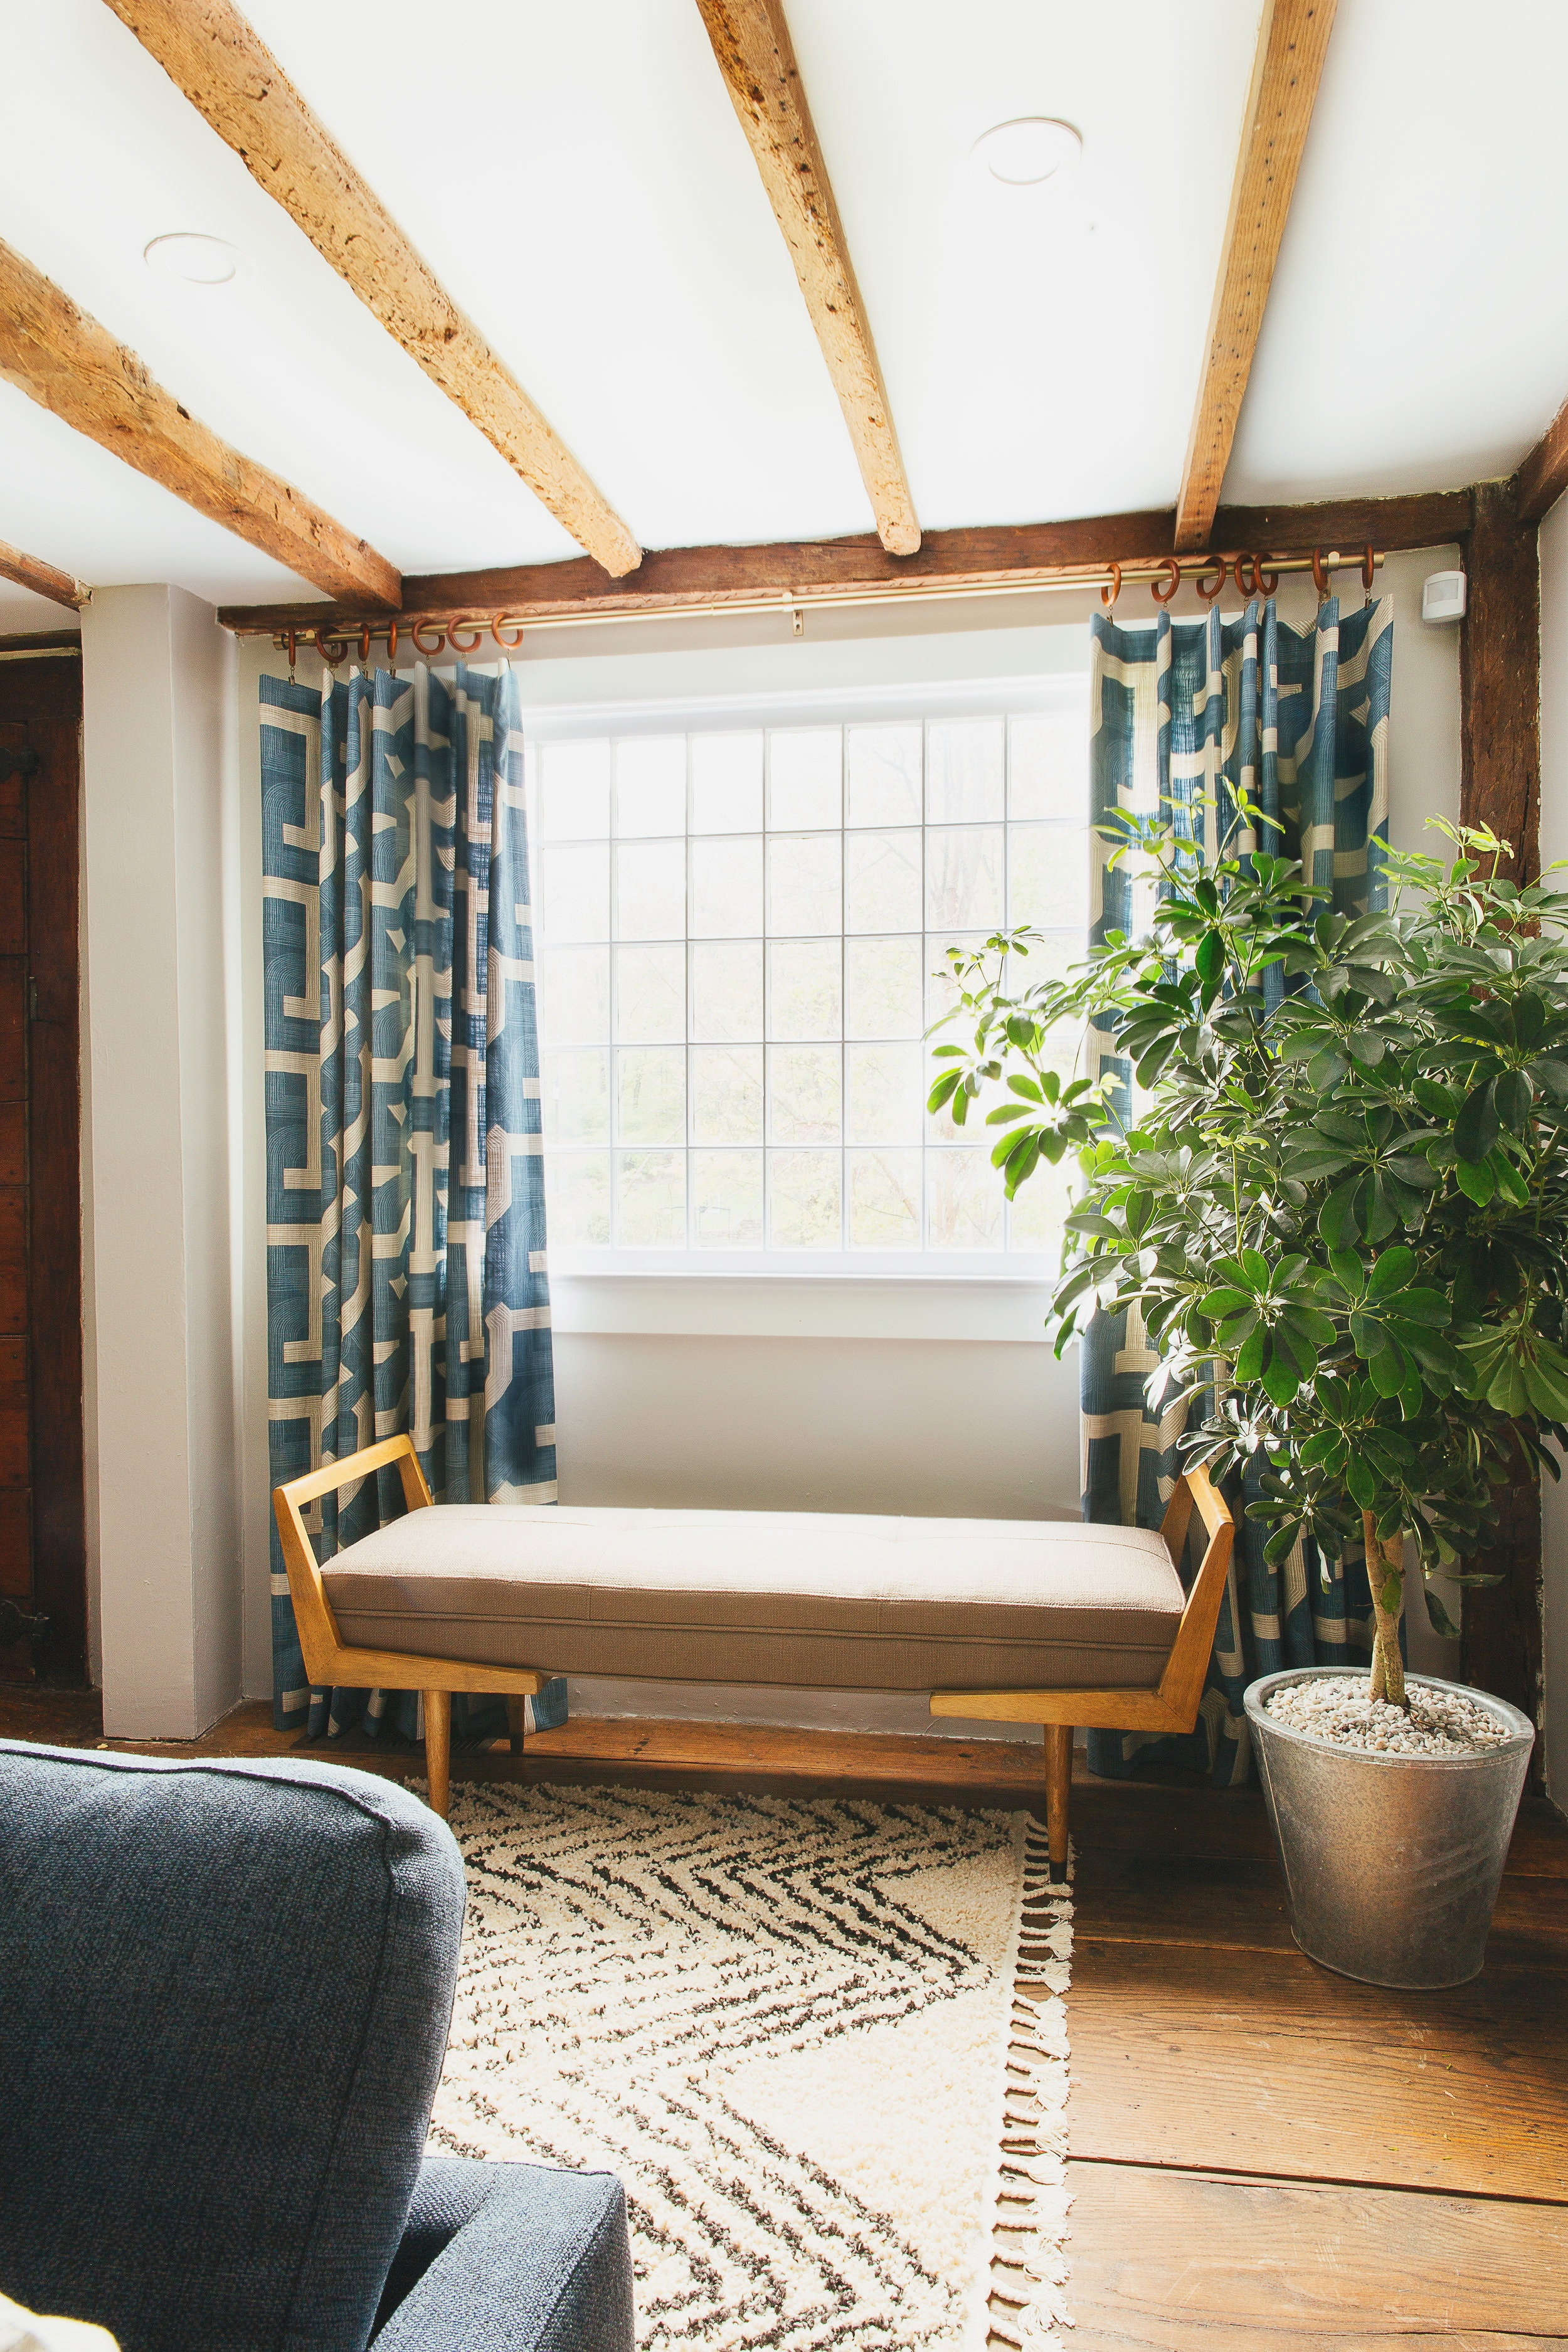 custom retro curtain panels and mid mod bench in farmhouse living room designed by The Rath Project